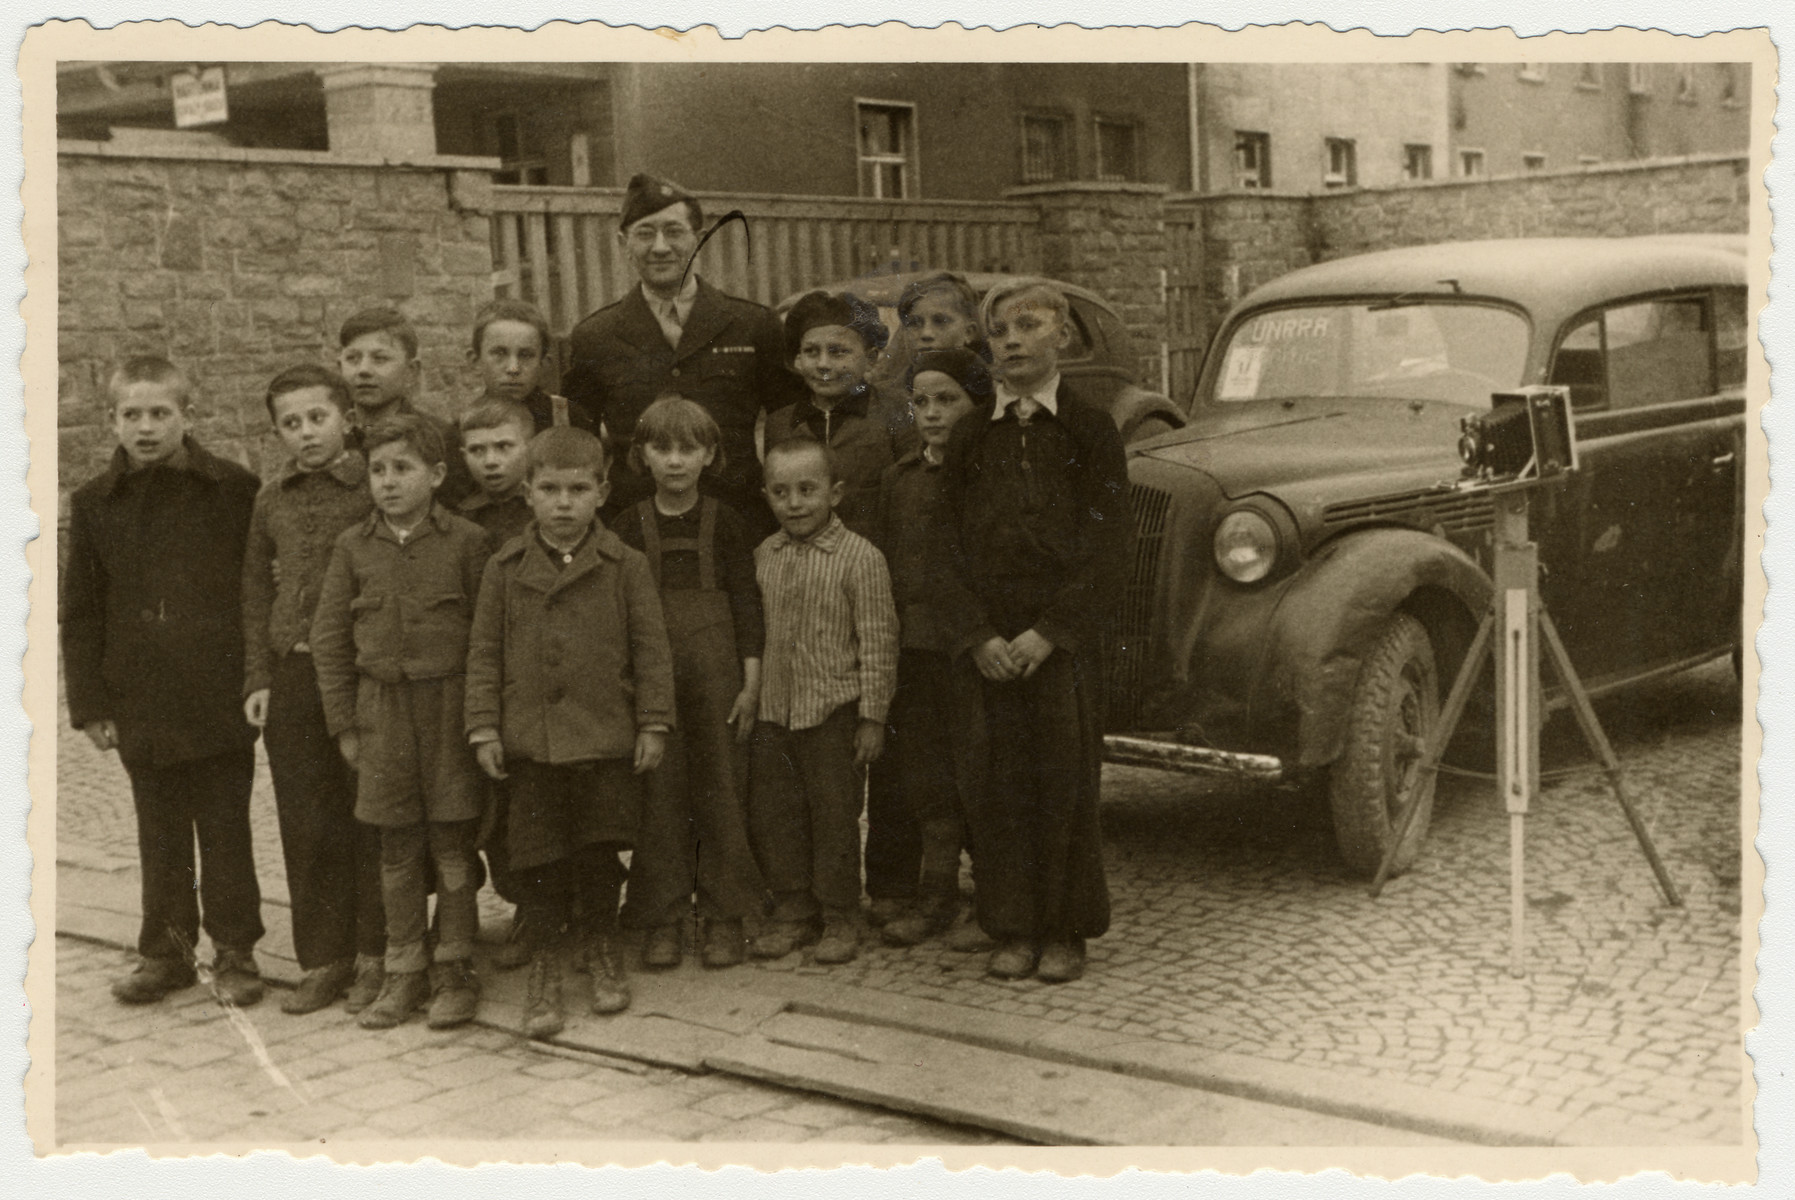 Mordecai Schwartz poses with a group of children in the Aschaffenburg displaced persons' camp.